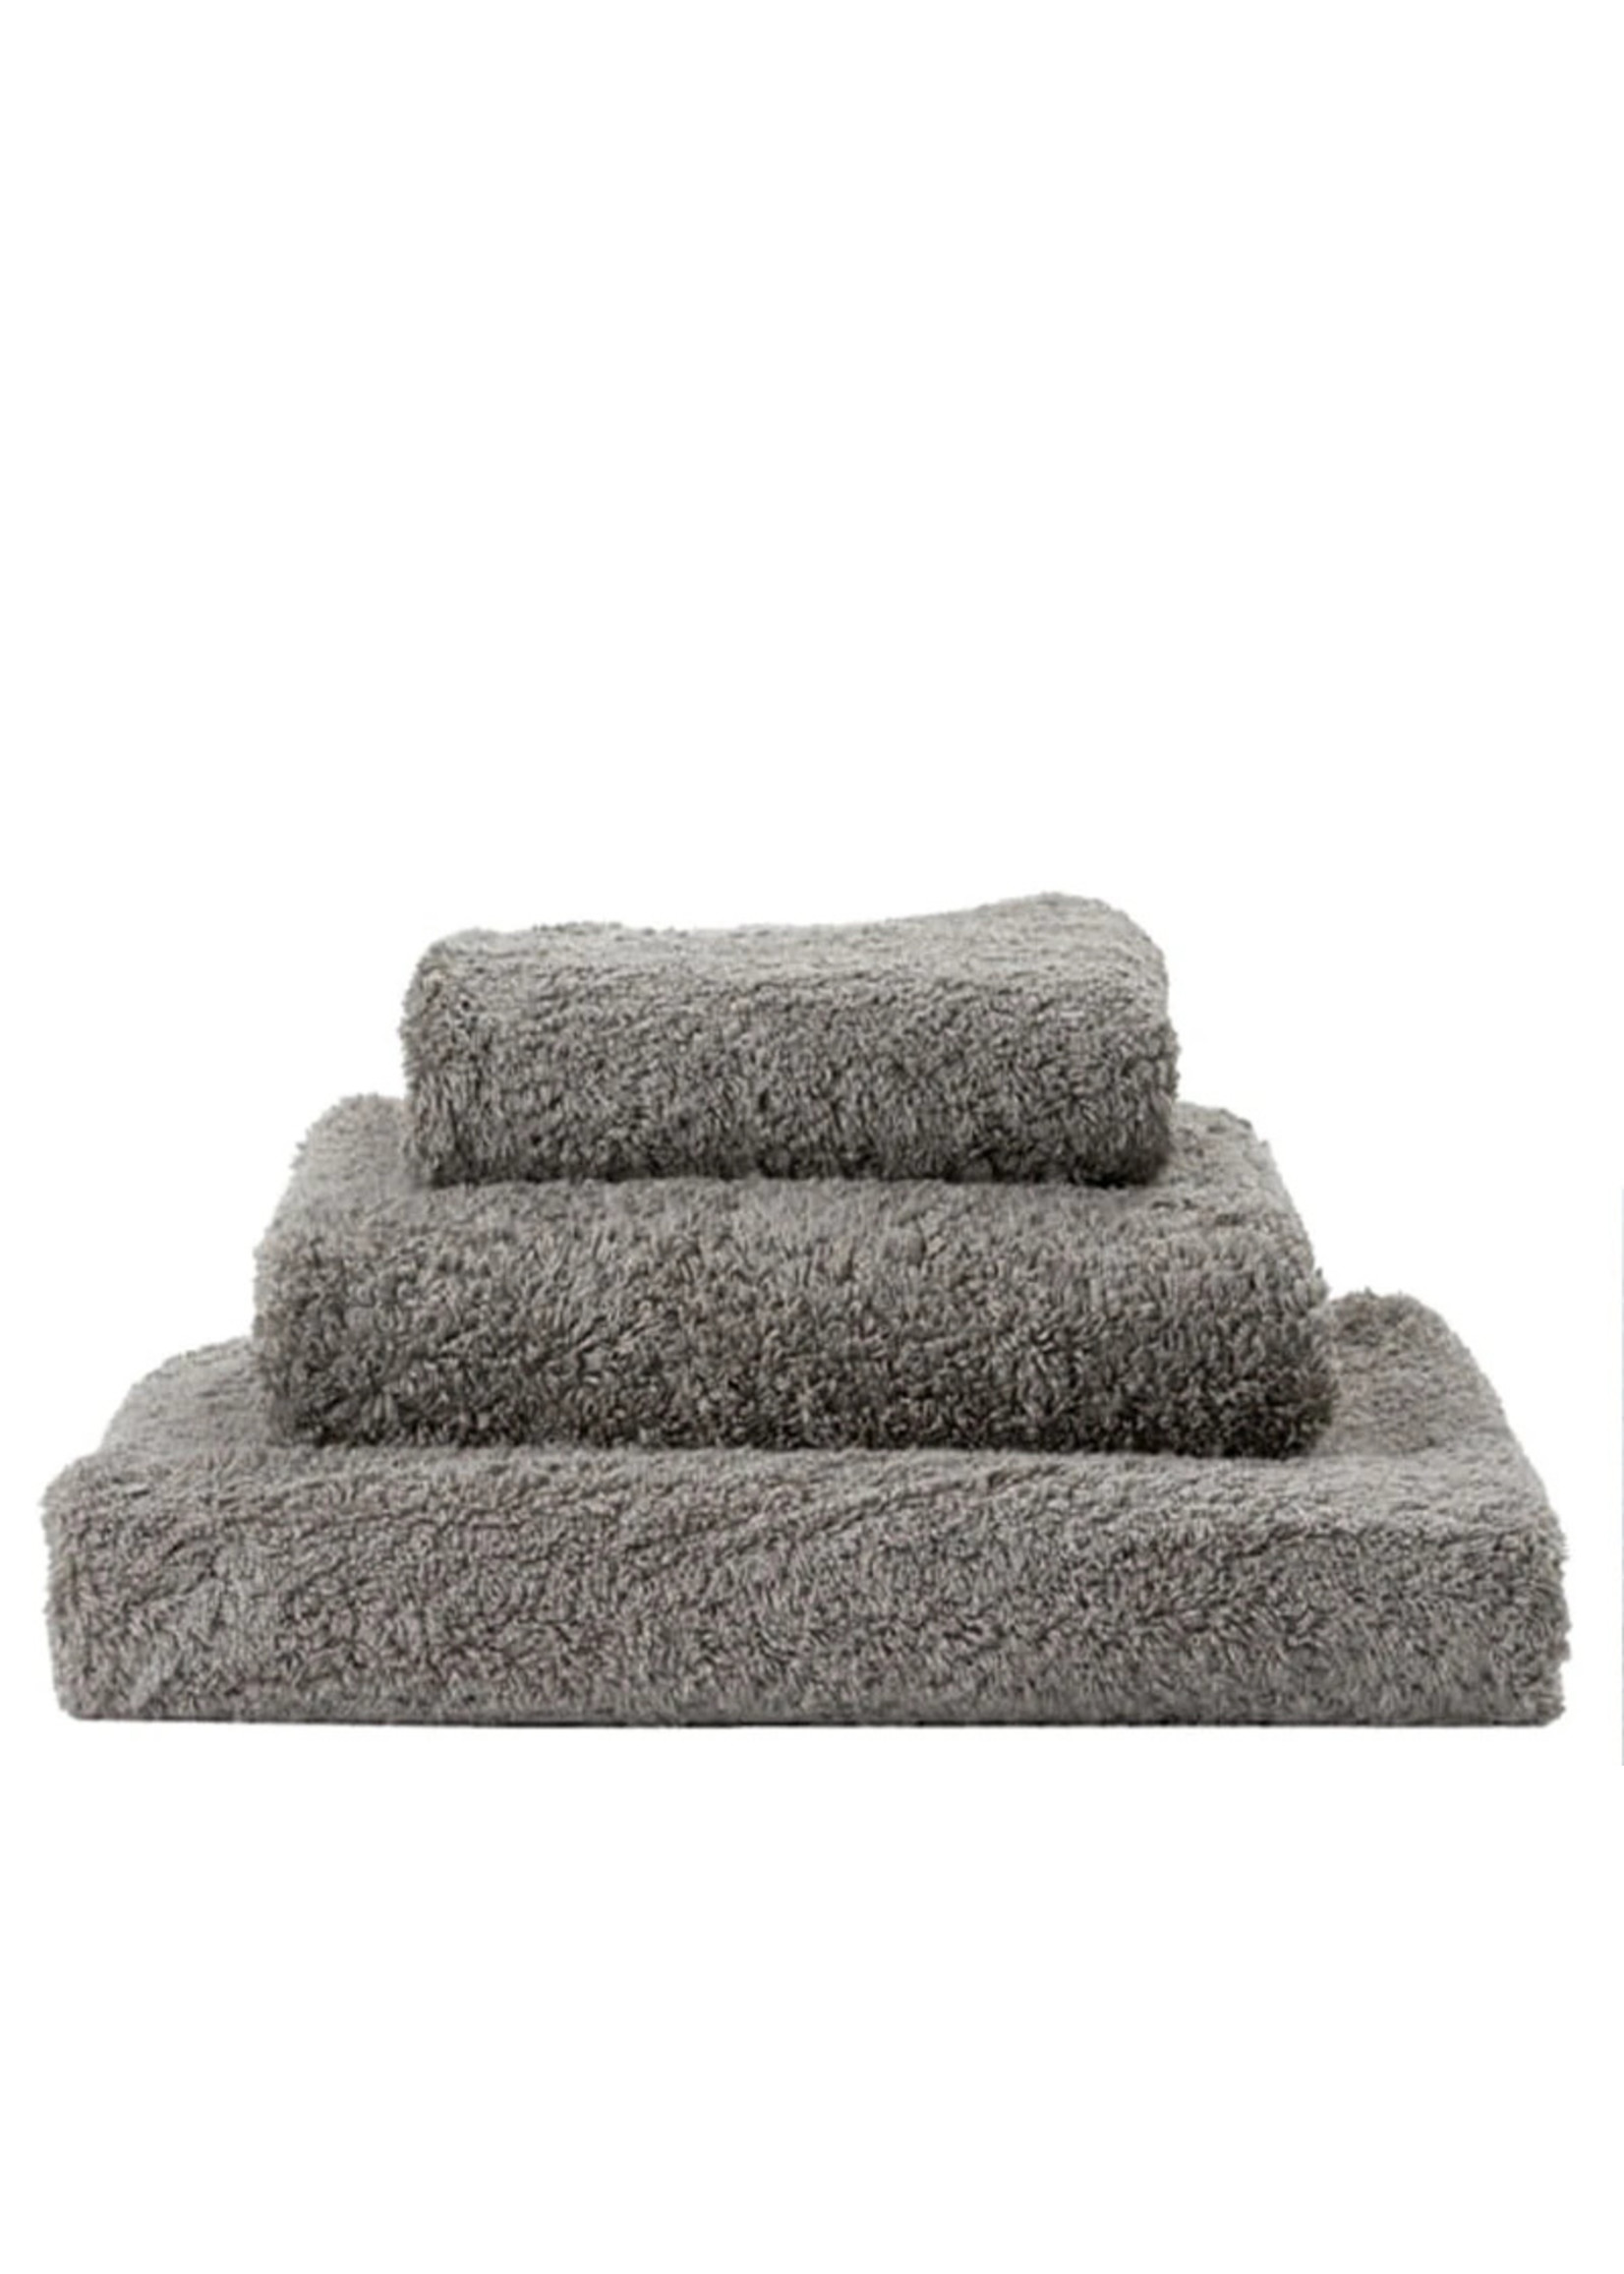 Abyss & Habidecor Super Pile Atmosphere Towels